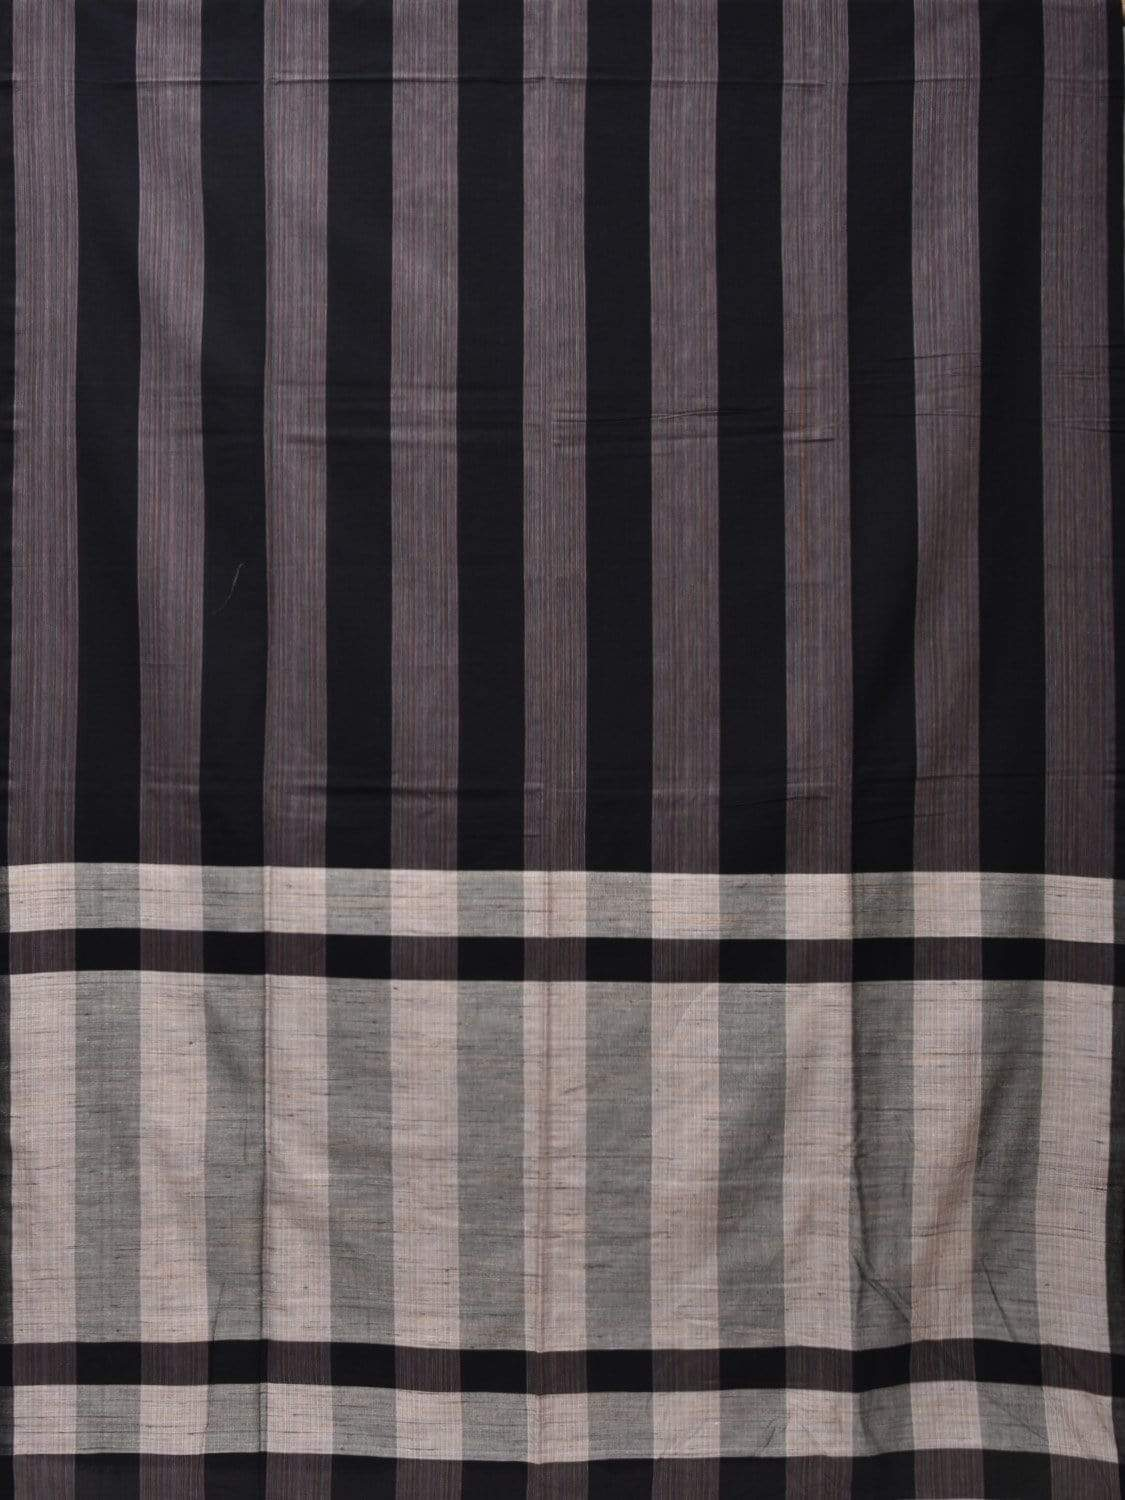 Black Soft Cotton Handloom Saree with Strips Design o0282